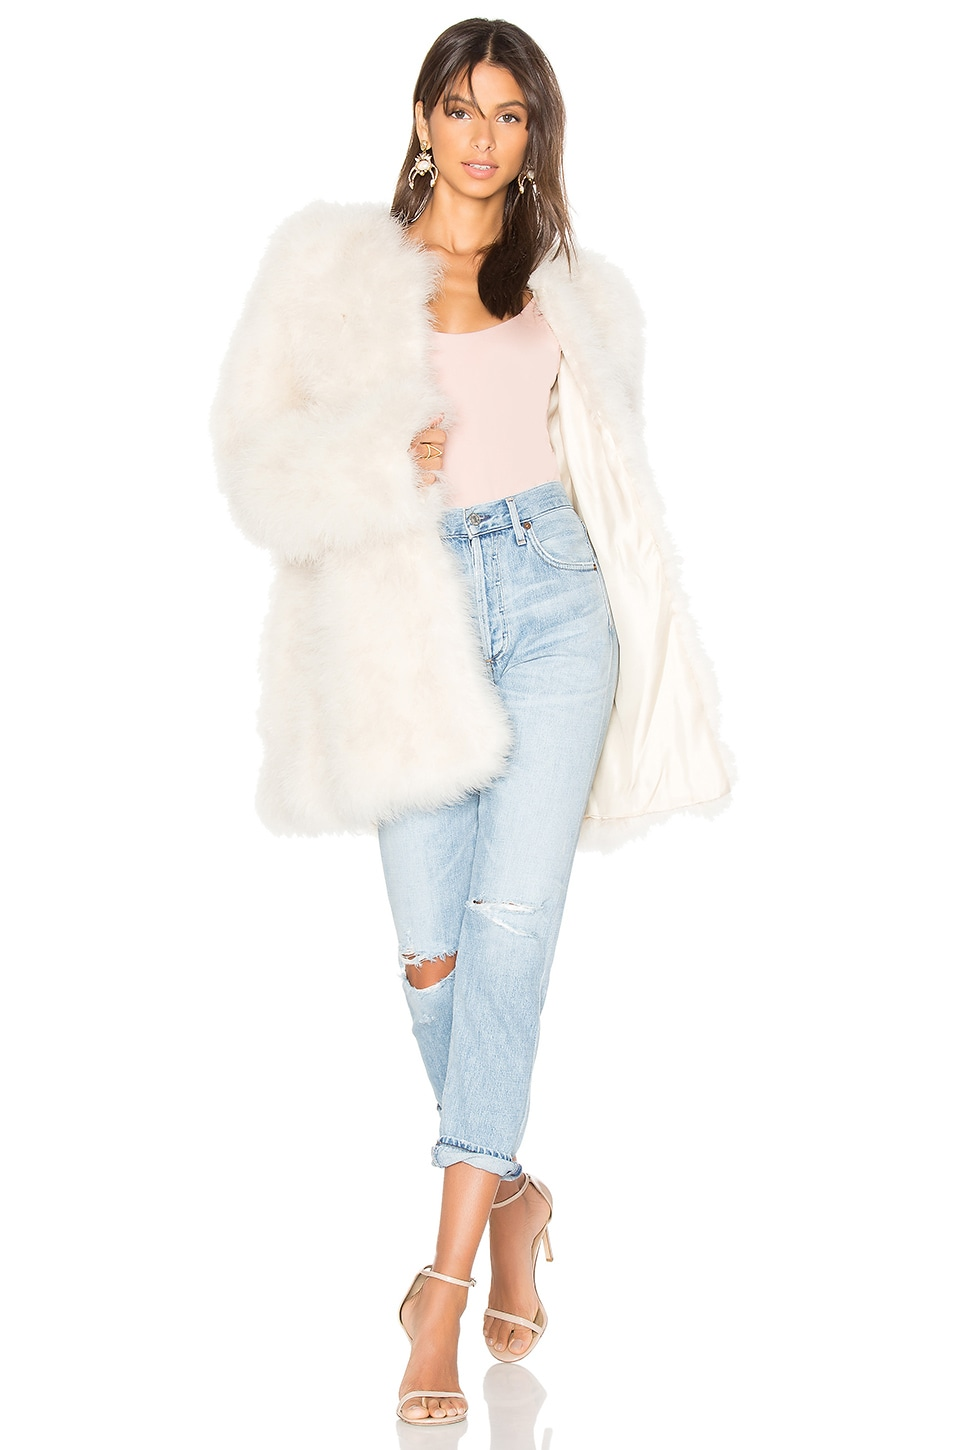 Marabou Feather Coat by Adrienne Landau